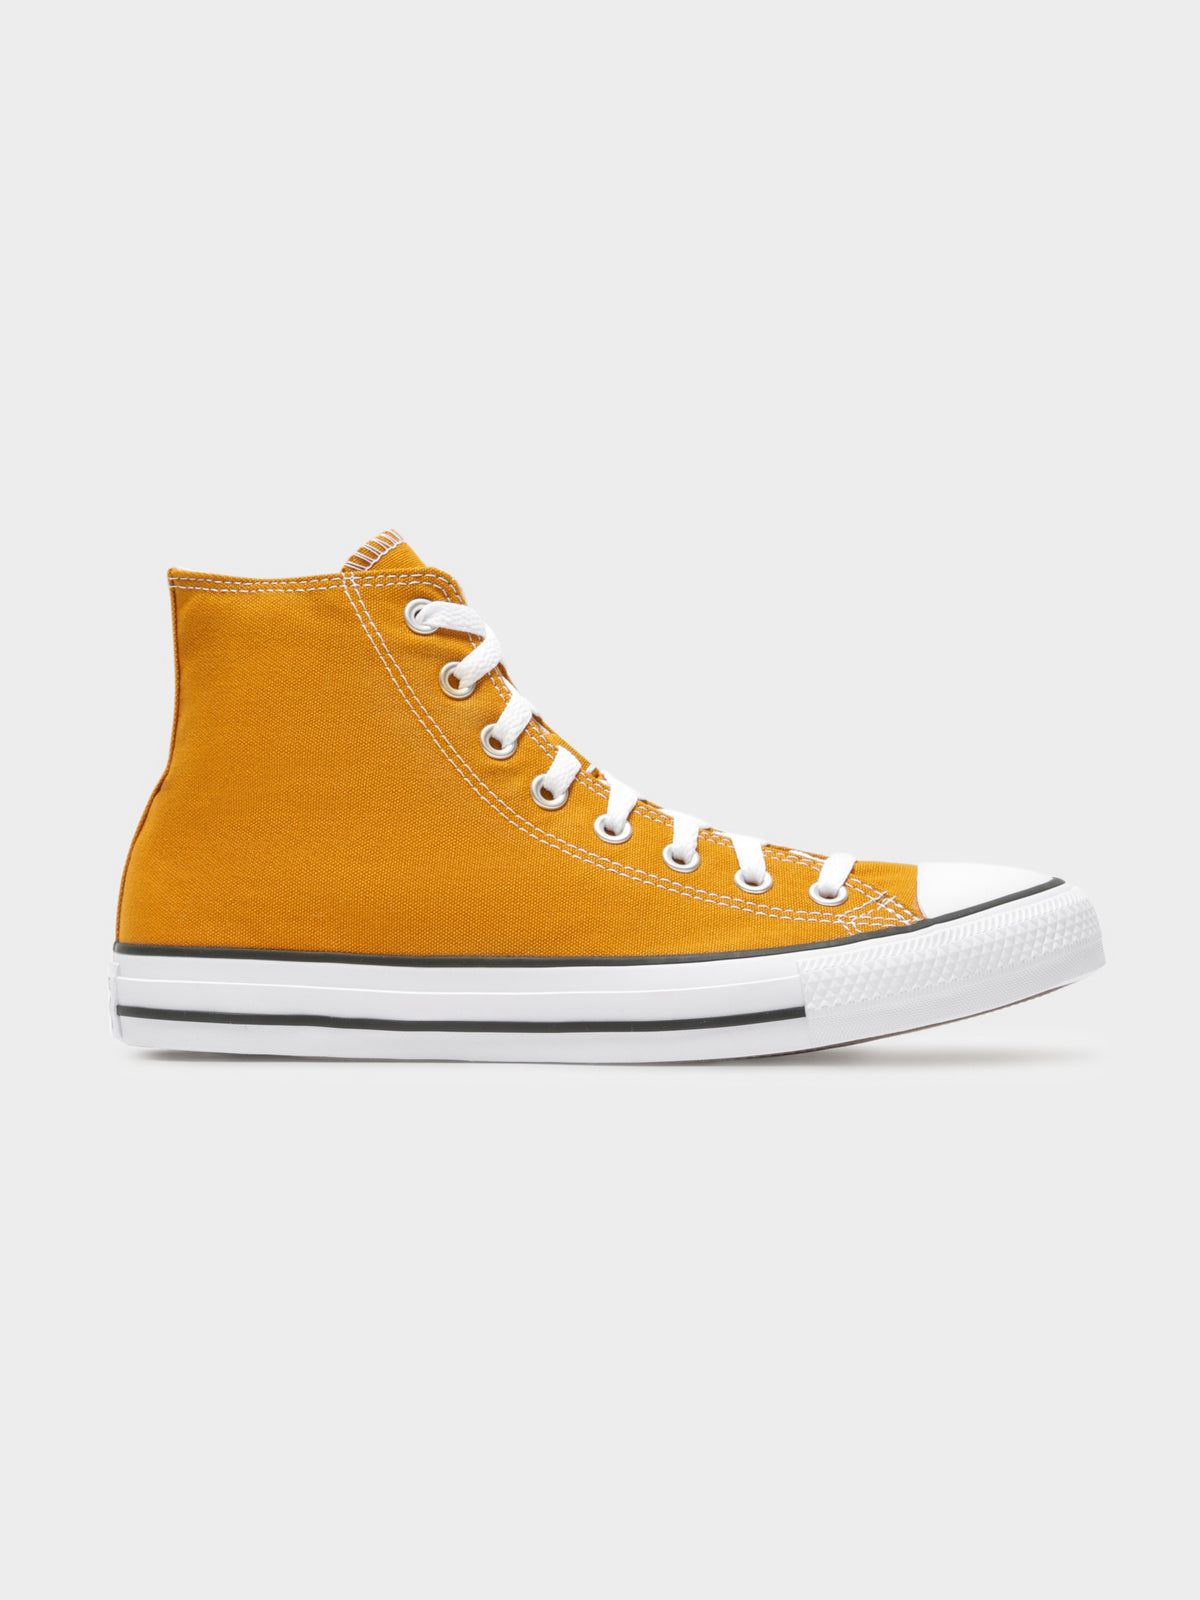 Unisex Chuck Taylor High Top Sneakers in Staffron Yellow